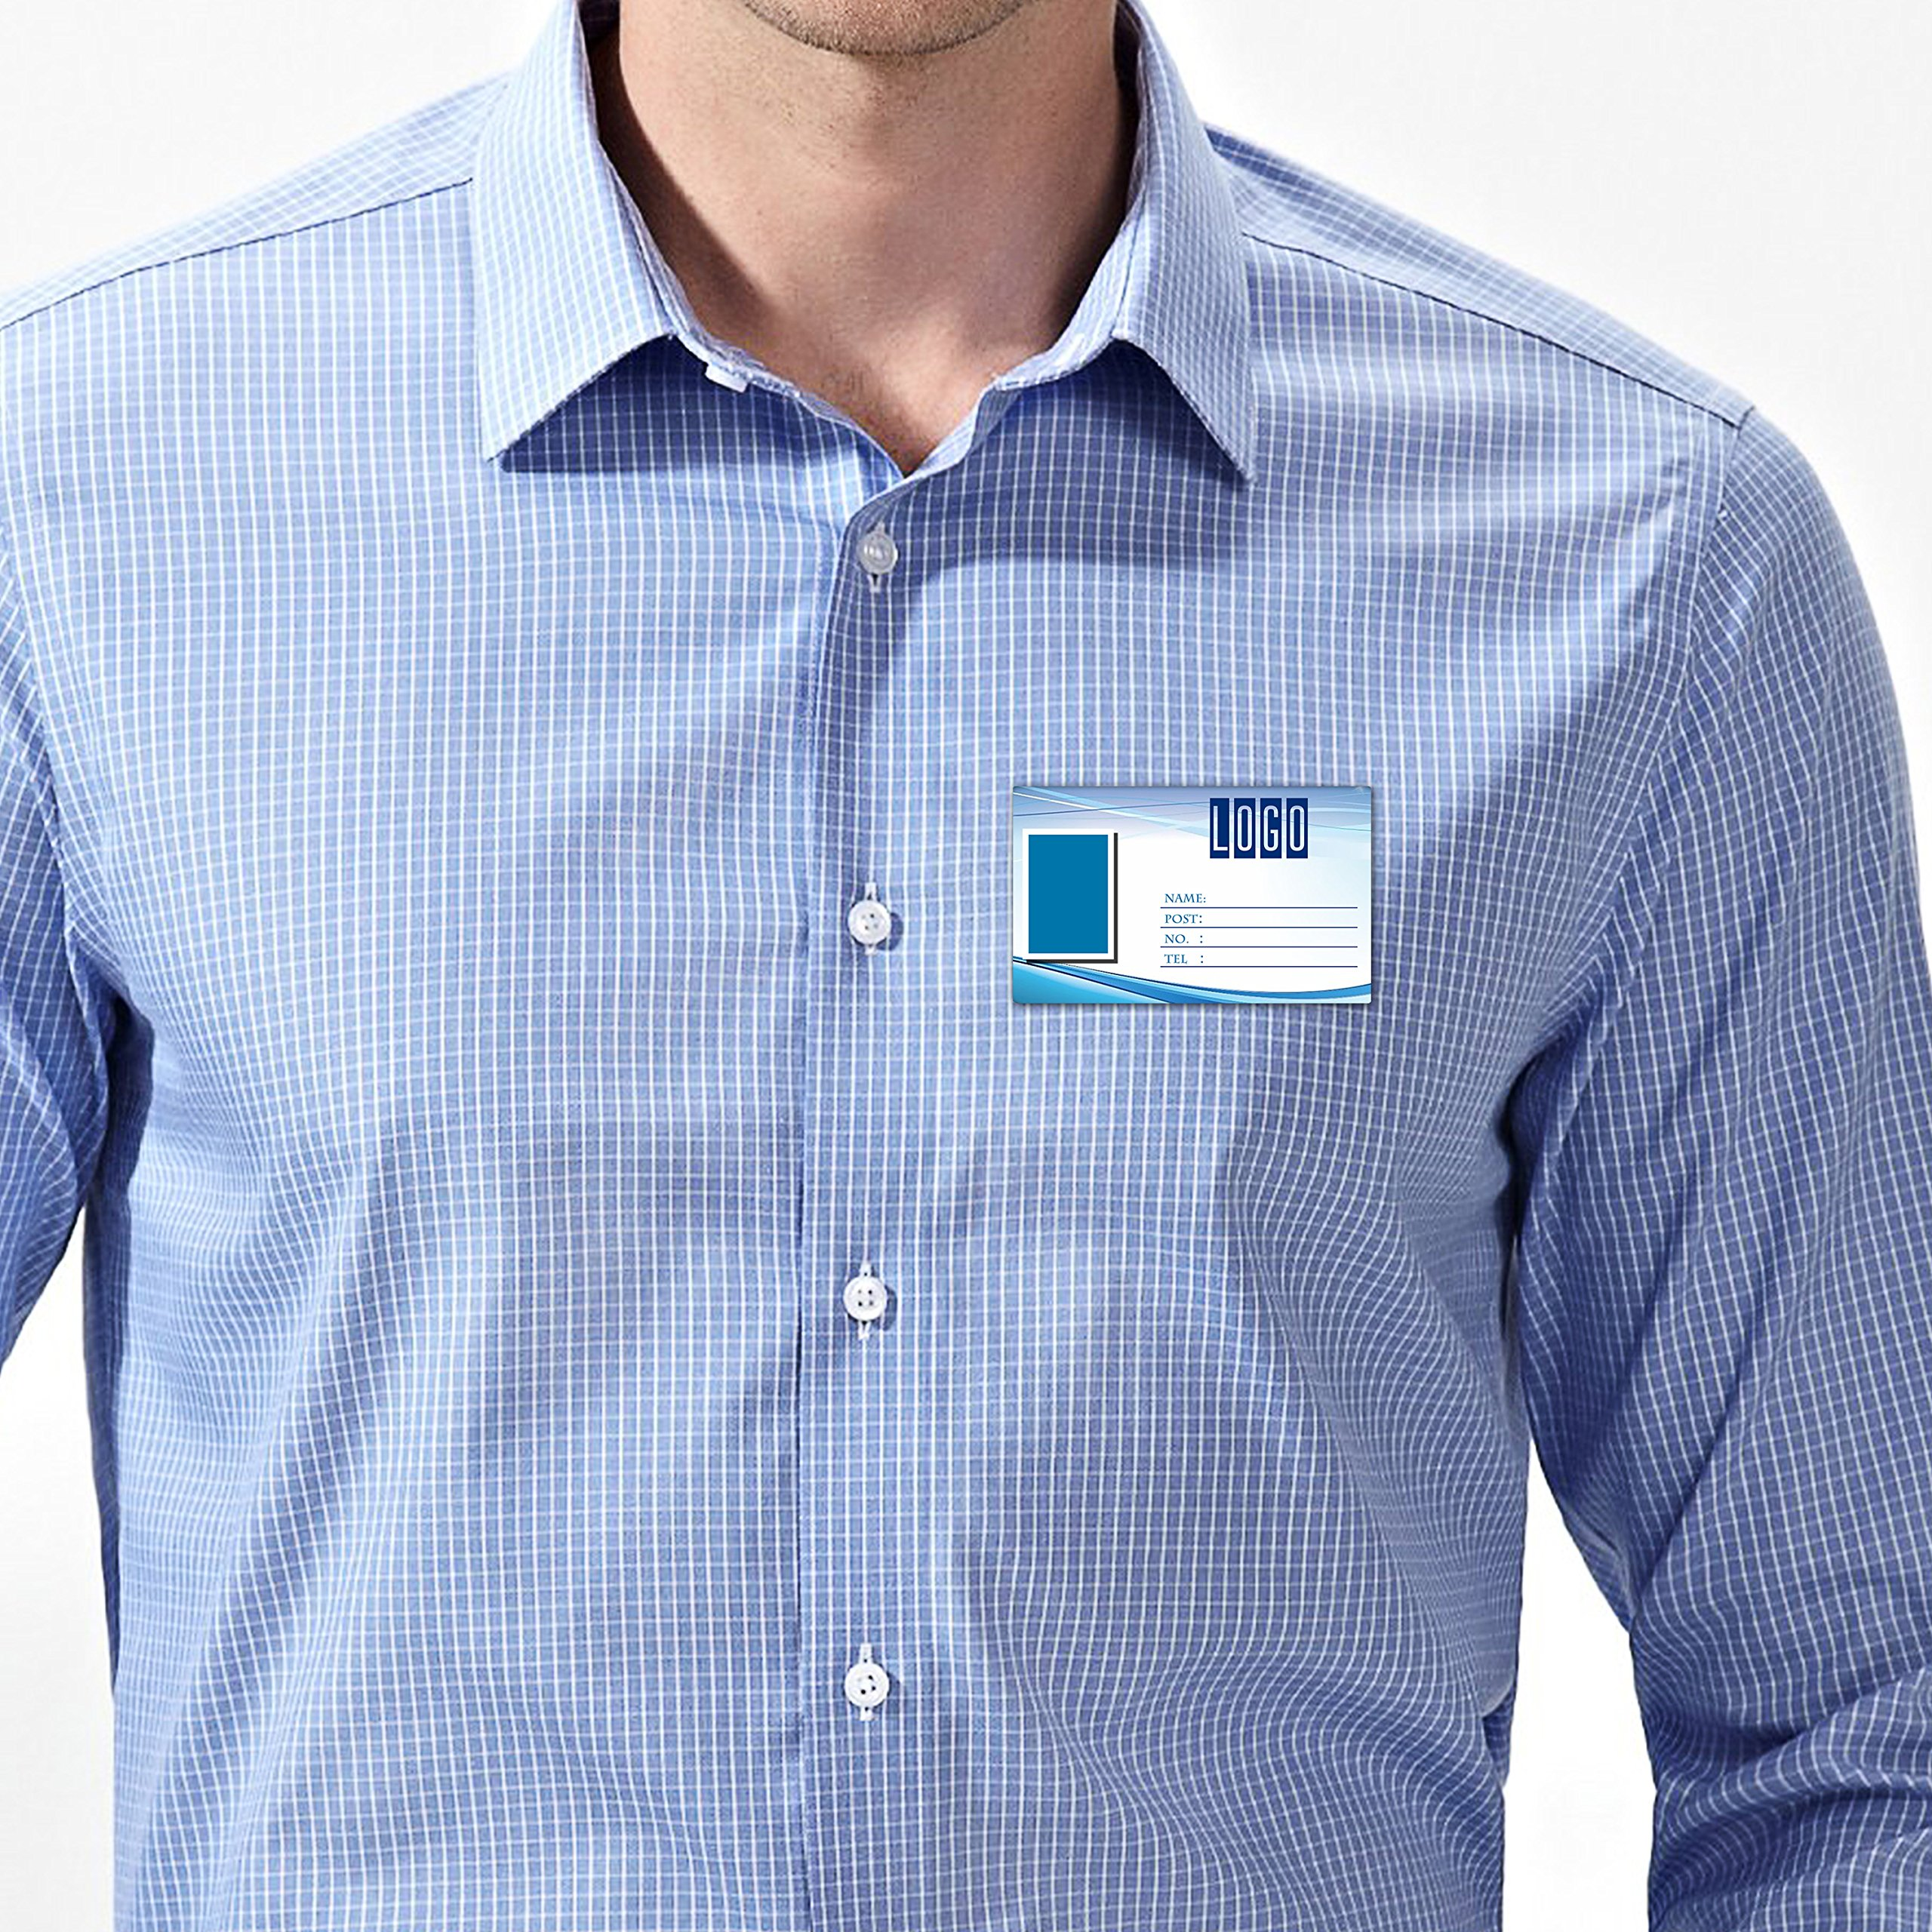 DIY Name Badges, Wisdompro 20 Set White Printable Blank PVC Badges (3-3/8'' x 2-1/8'') with Magnetic Name Tag For Jacket, Lapel,or Shirt - No Holes in your Fine Jackets or Shirts by Wisdompro (Image #6)